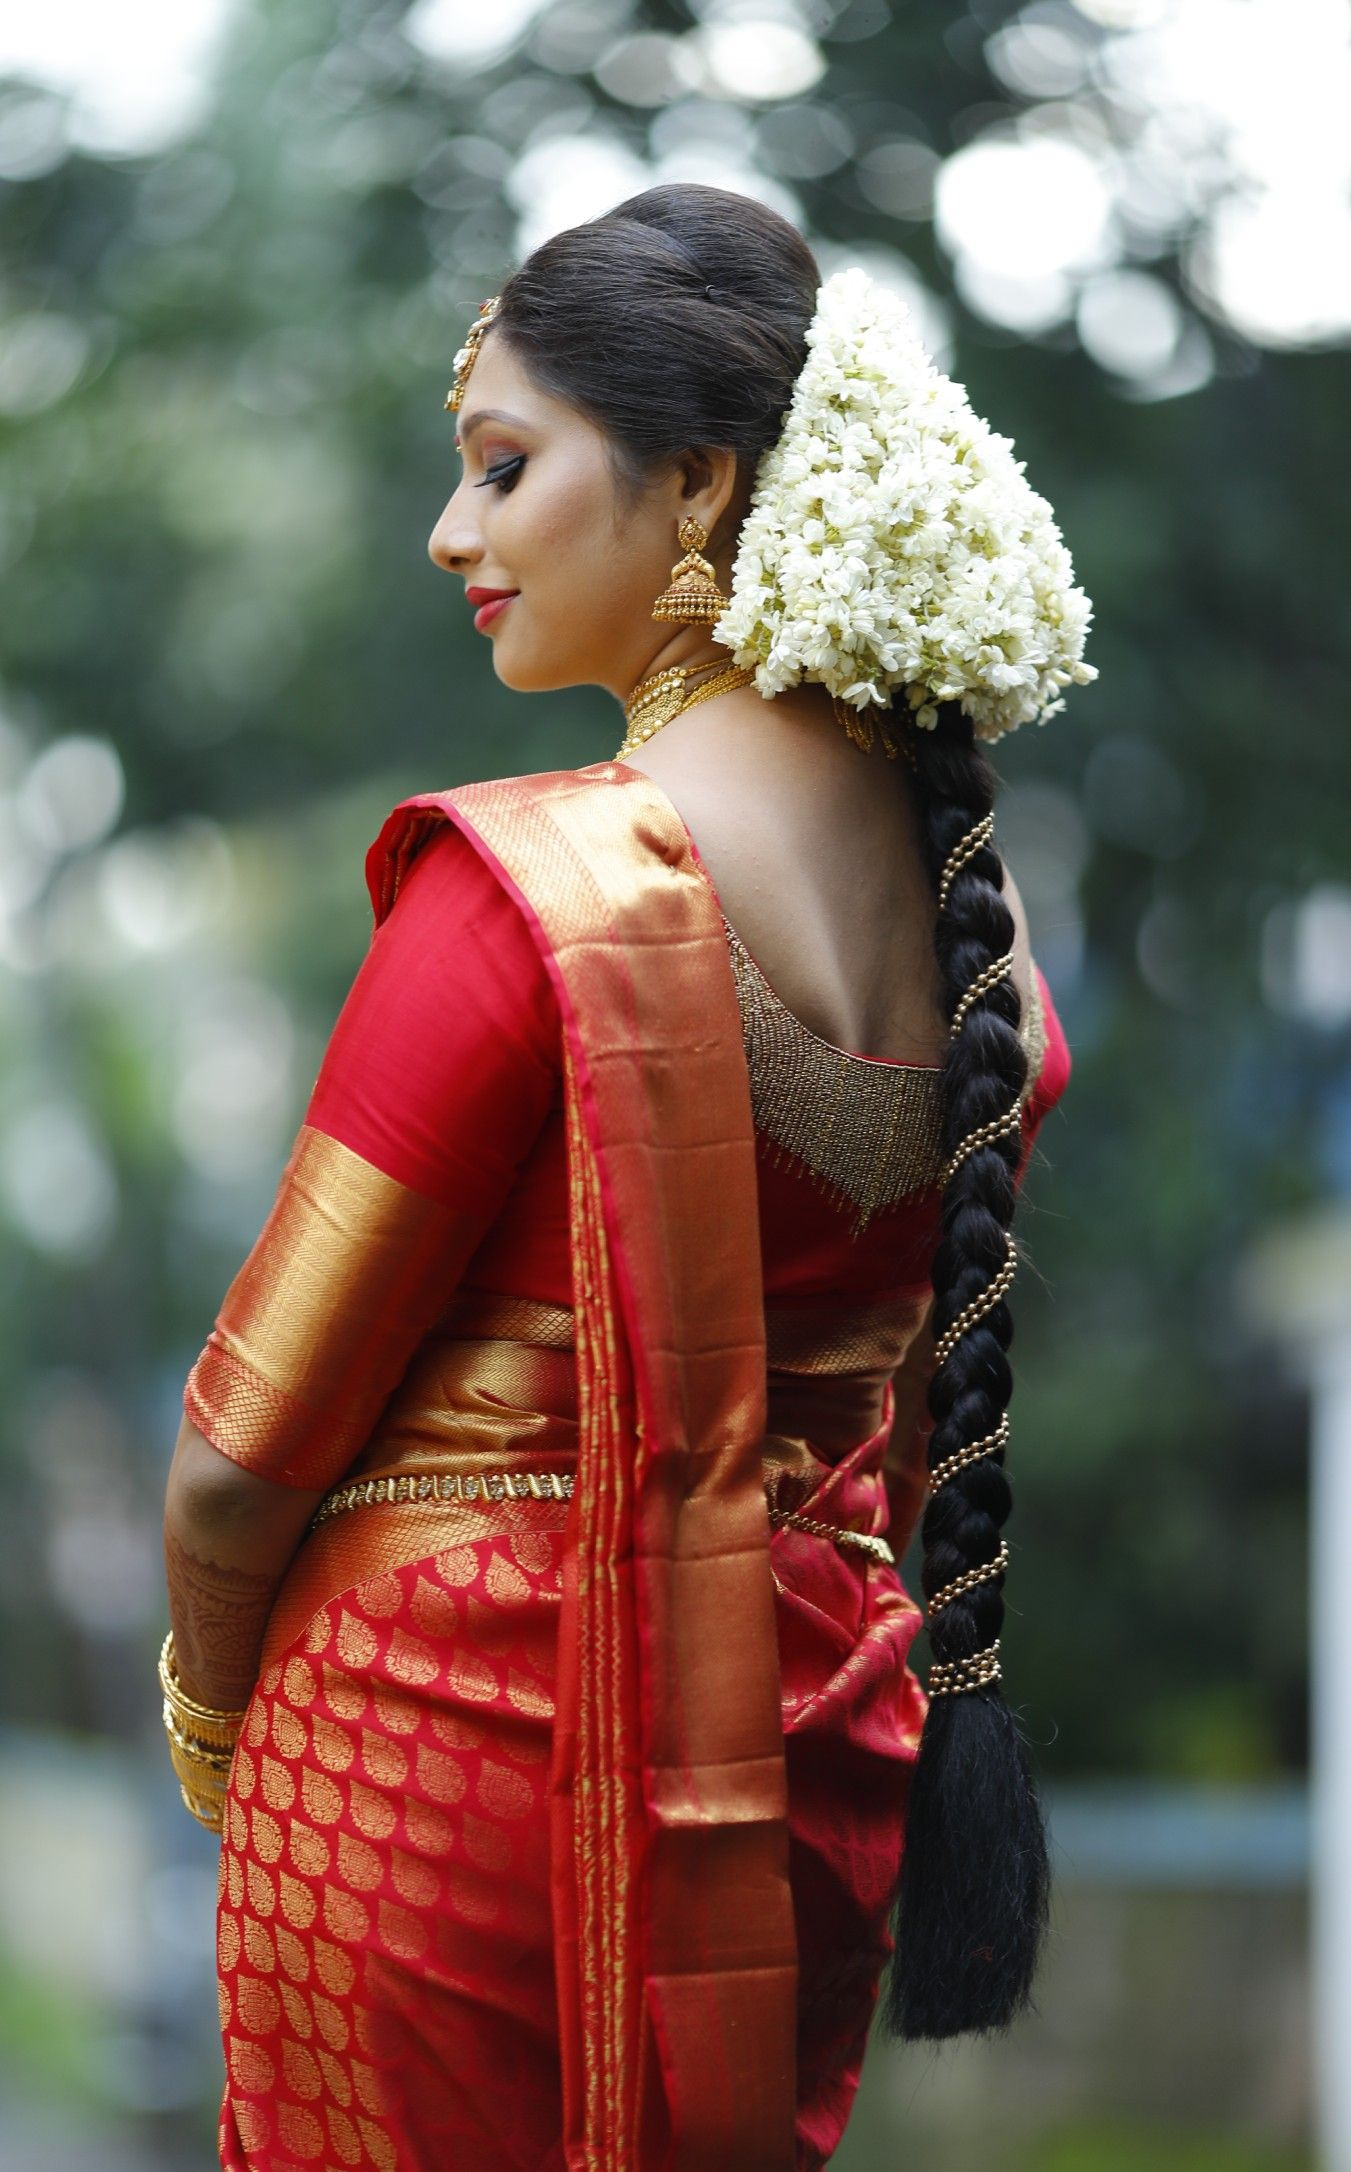 Pin By The Crazy Shopoholic On Kerala Hindu Brides Hindu Bride Kerala Hindu Bride Bridal Hairstyle Indian Wedding